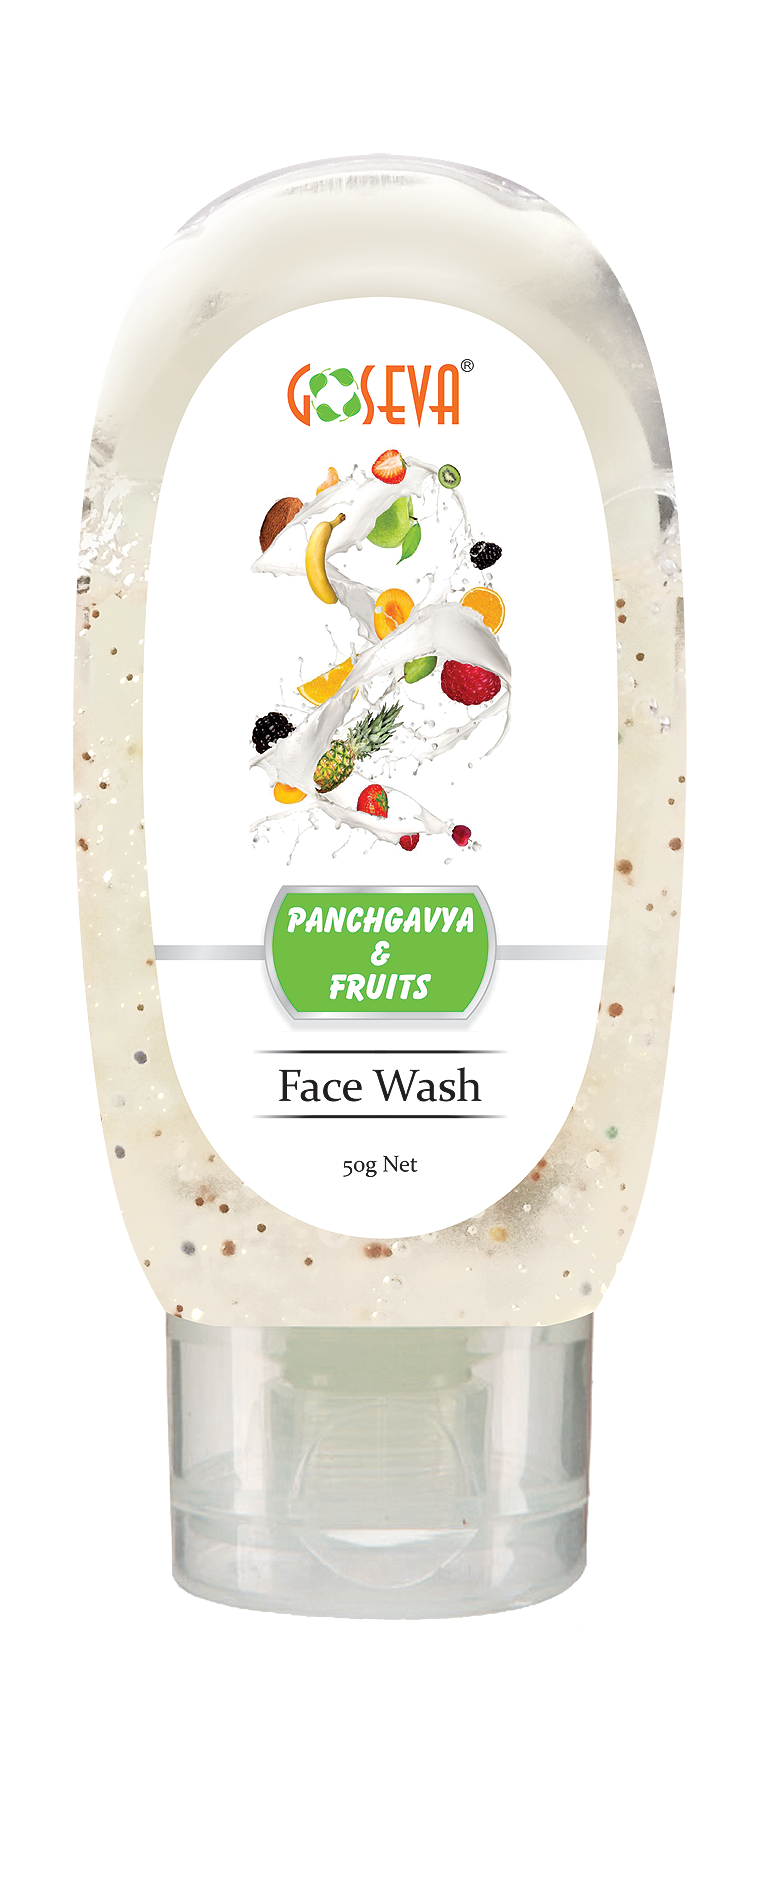 Goseva Mix Fruit Panchagavya Face Wash